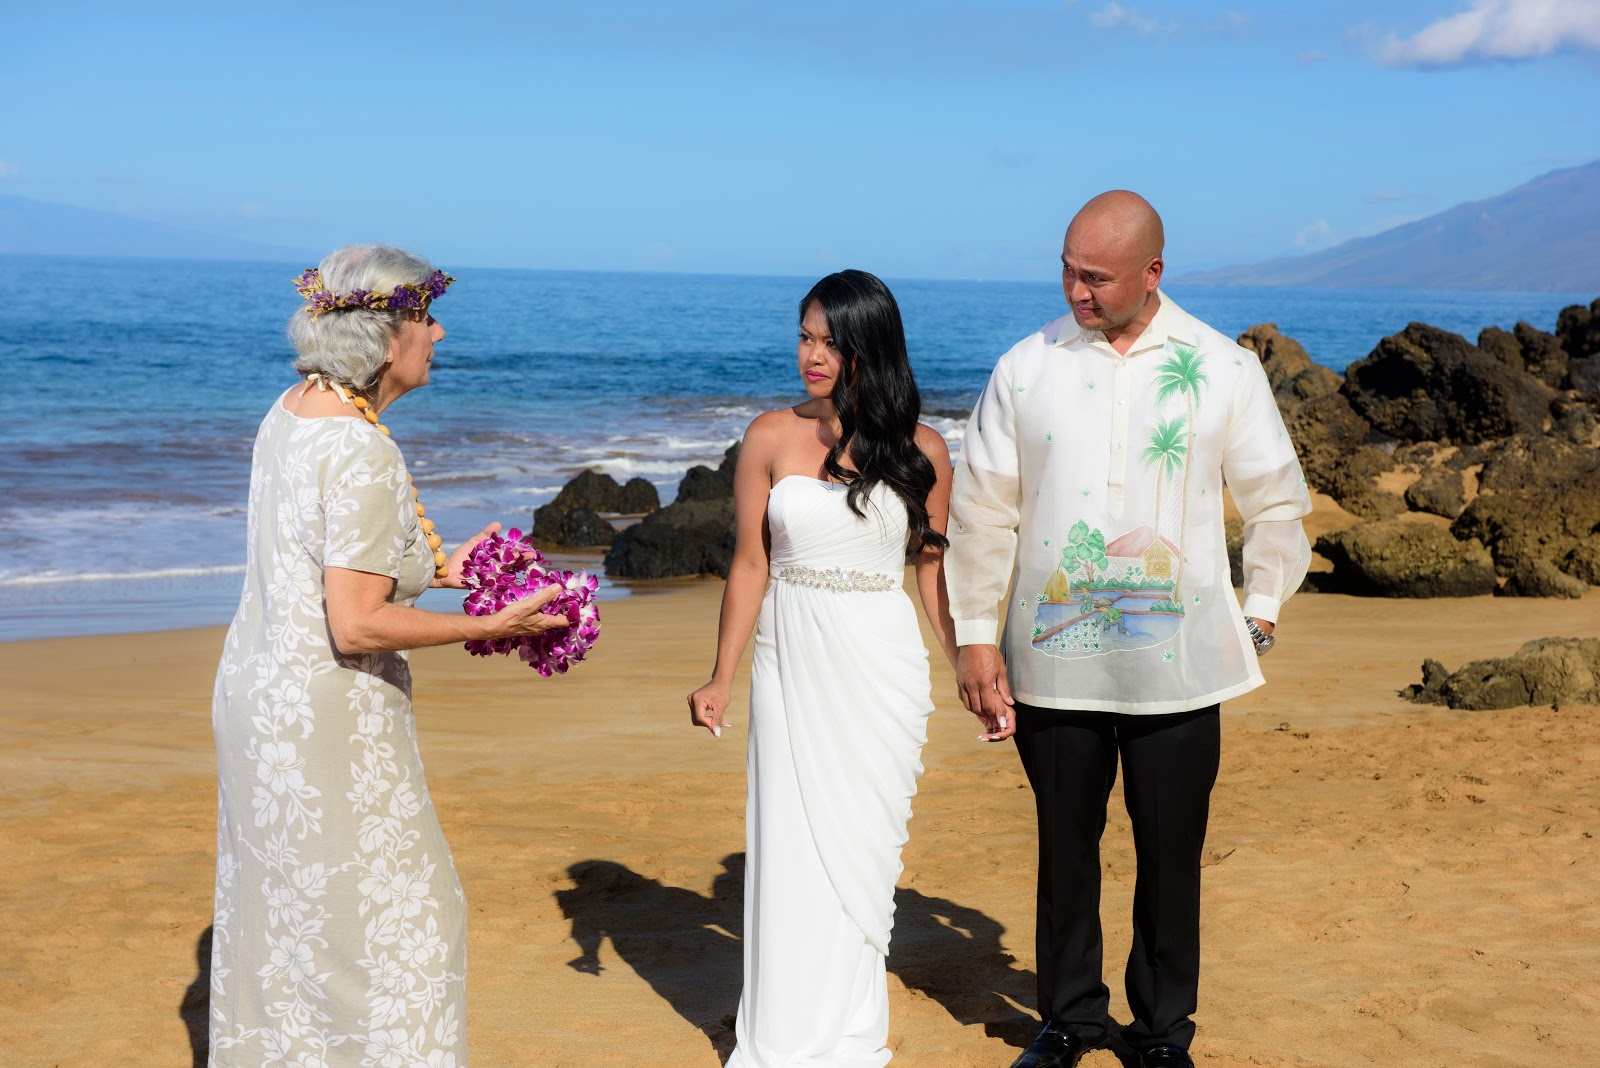 Maui Weddings Wedding Planners Photographers Coordinators